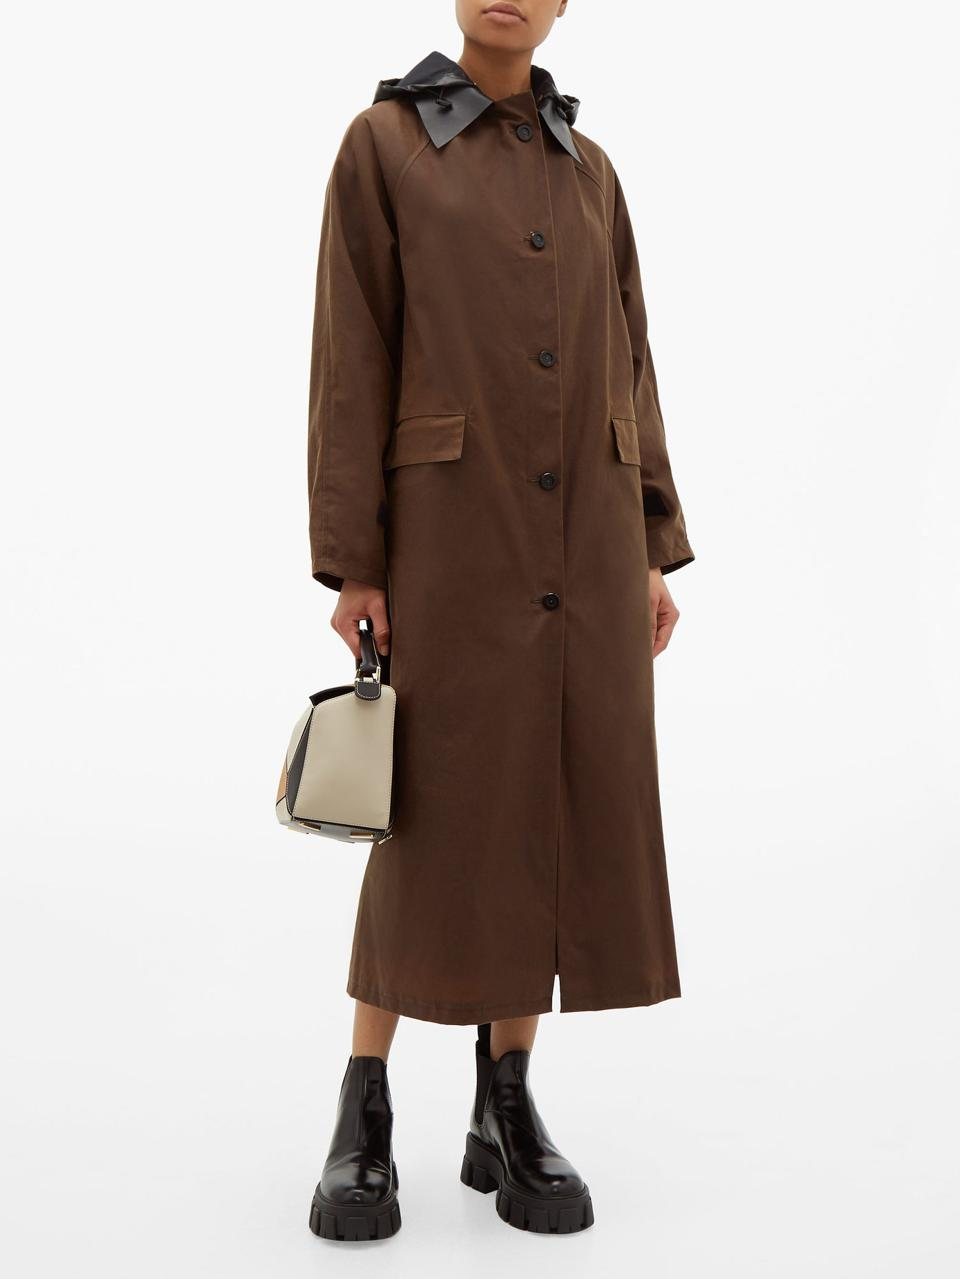 Kassl Editions_Best Waxed Coats For Fall